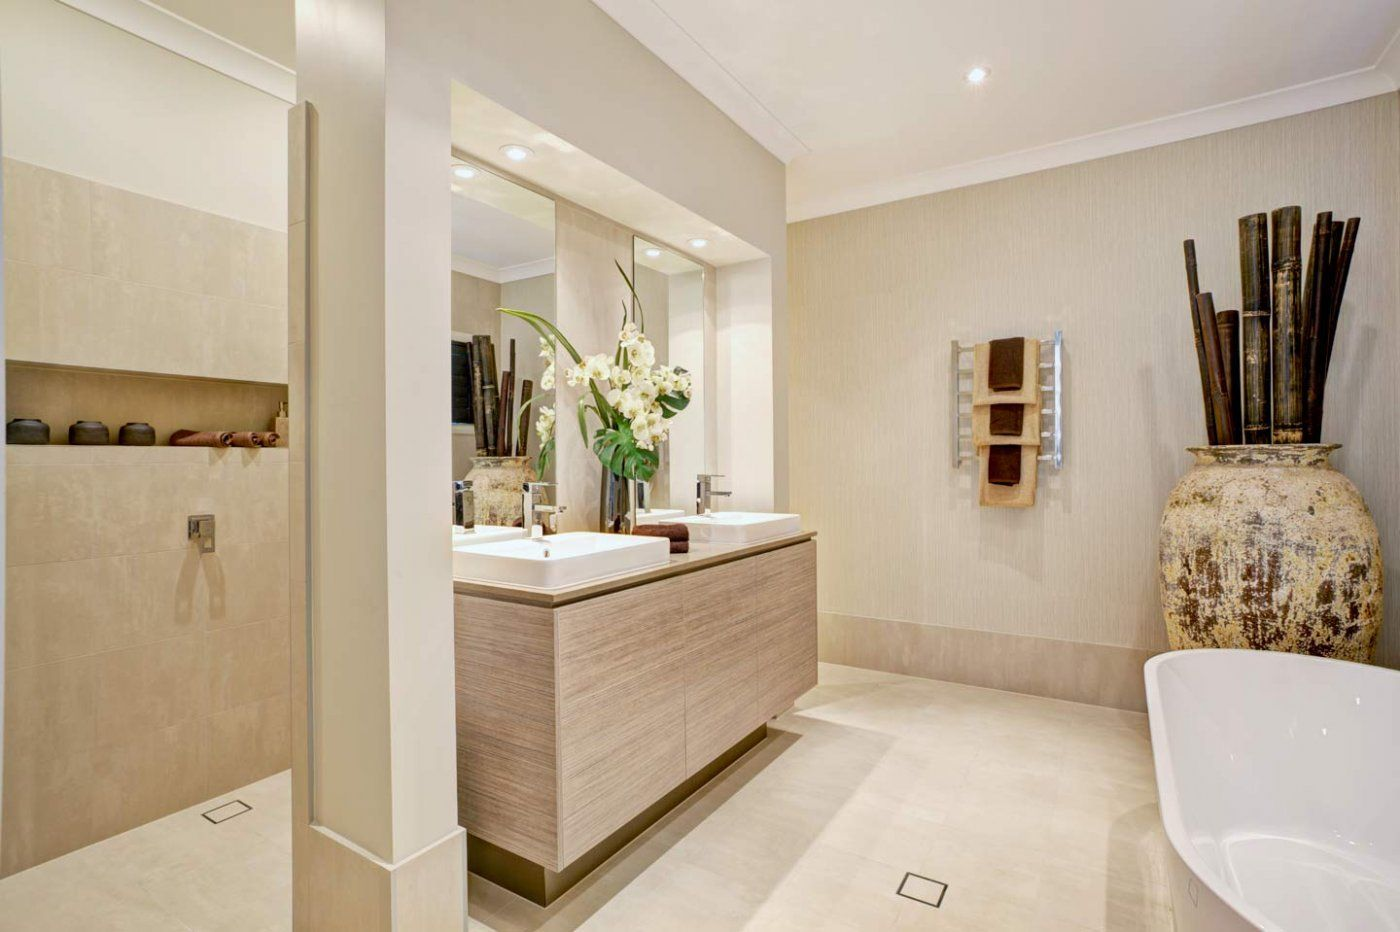 Oasis - Images | McDonald Jones Homes | Bathroom | Pinterest | Oasis ...